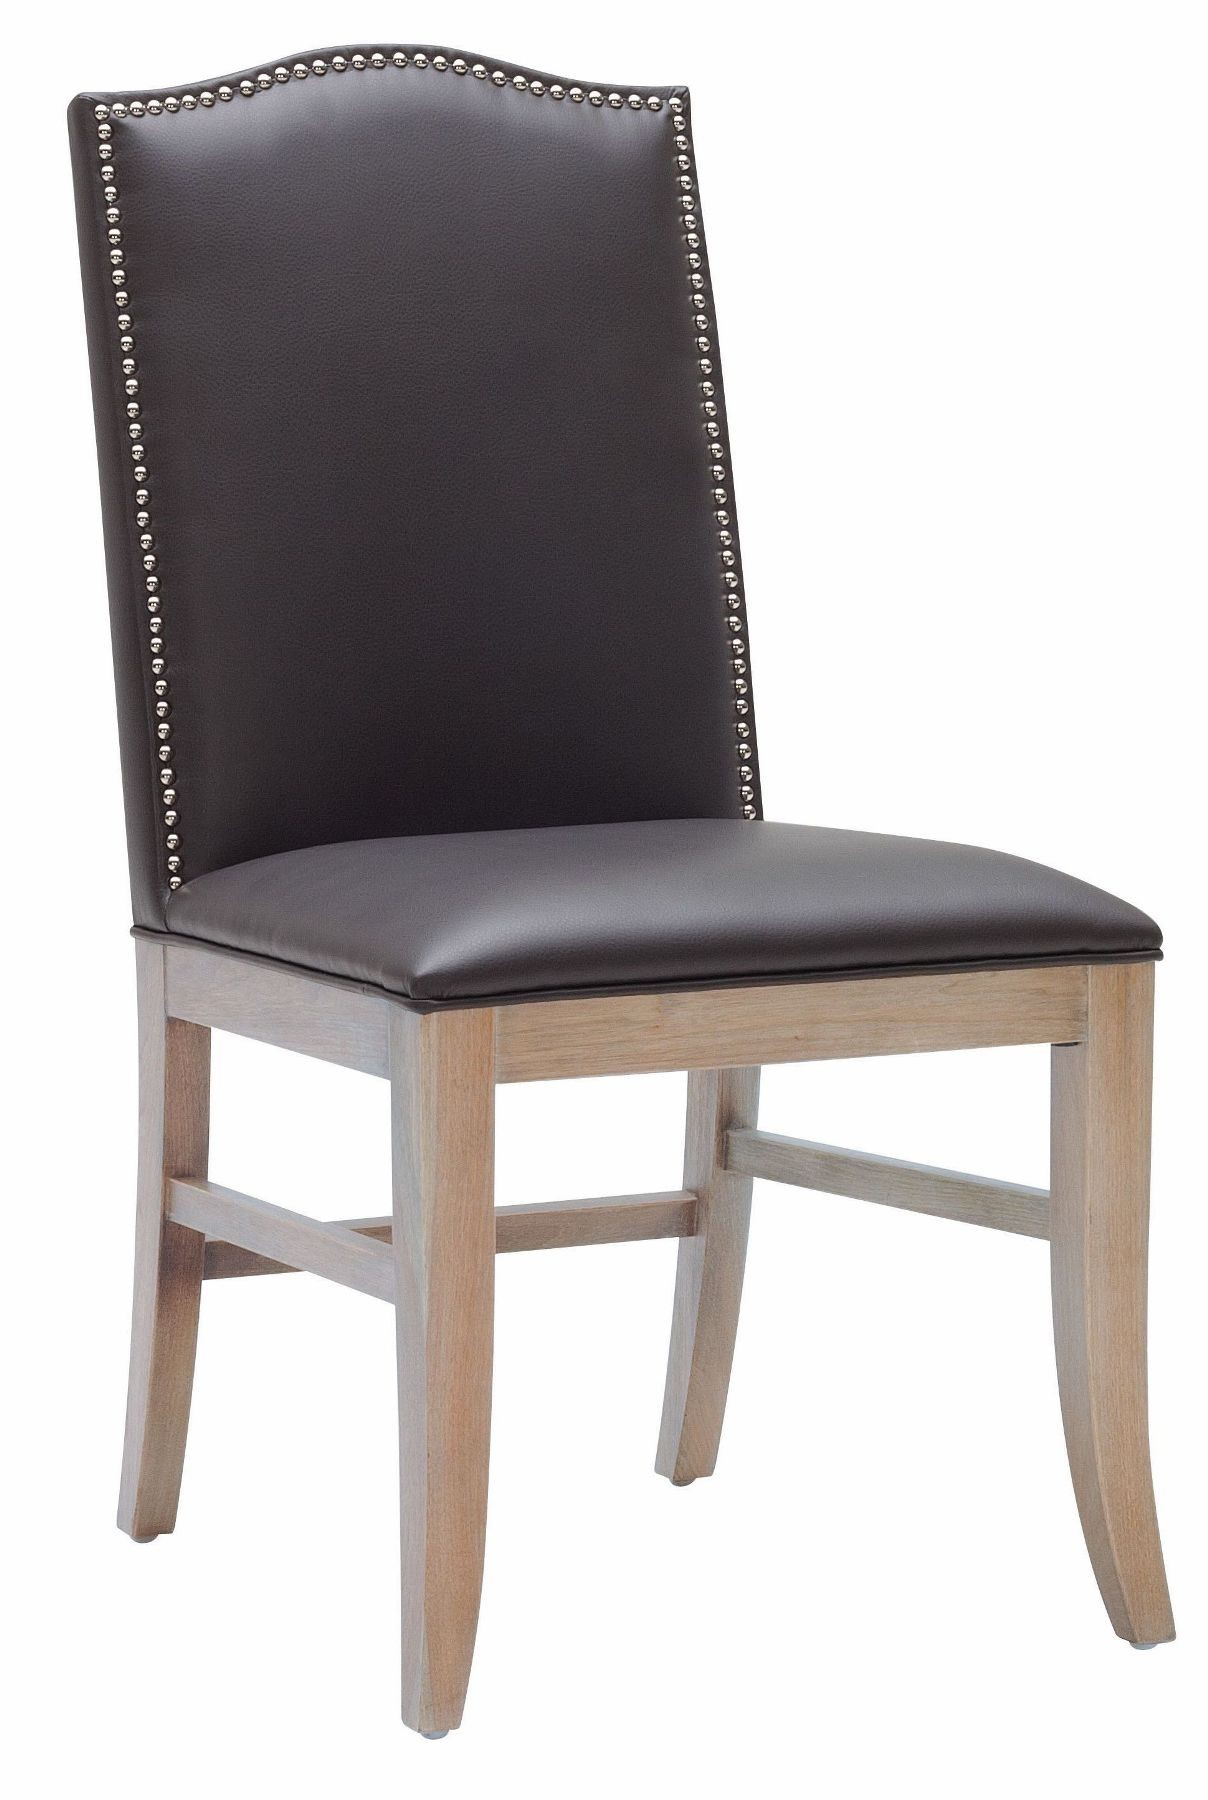 Maison Gray Leather Dining Chair Set of 2 from Sunpan